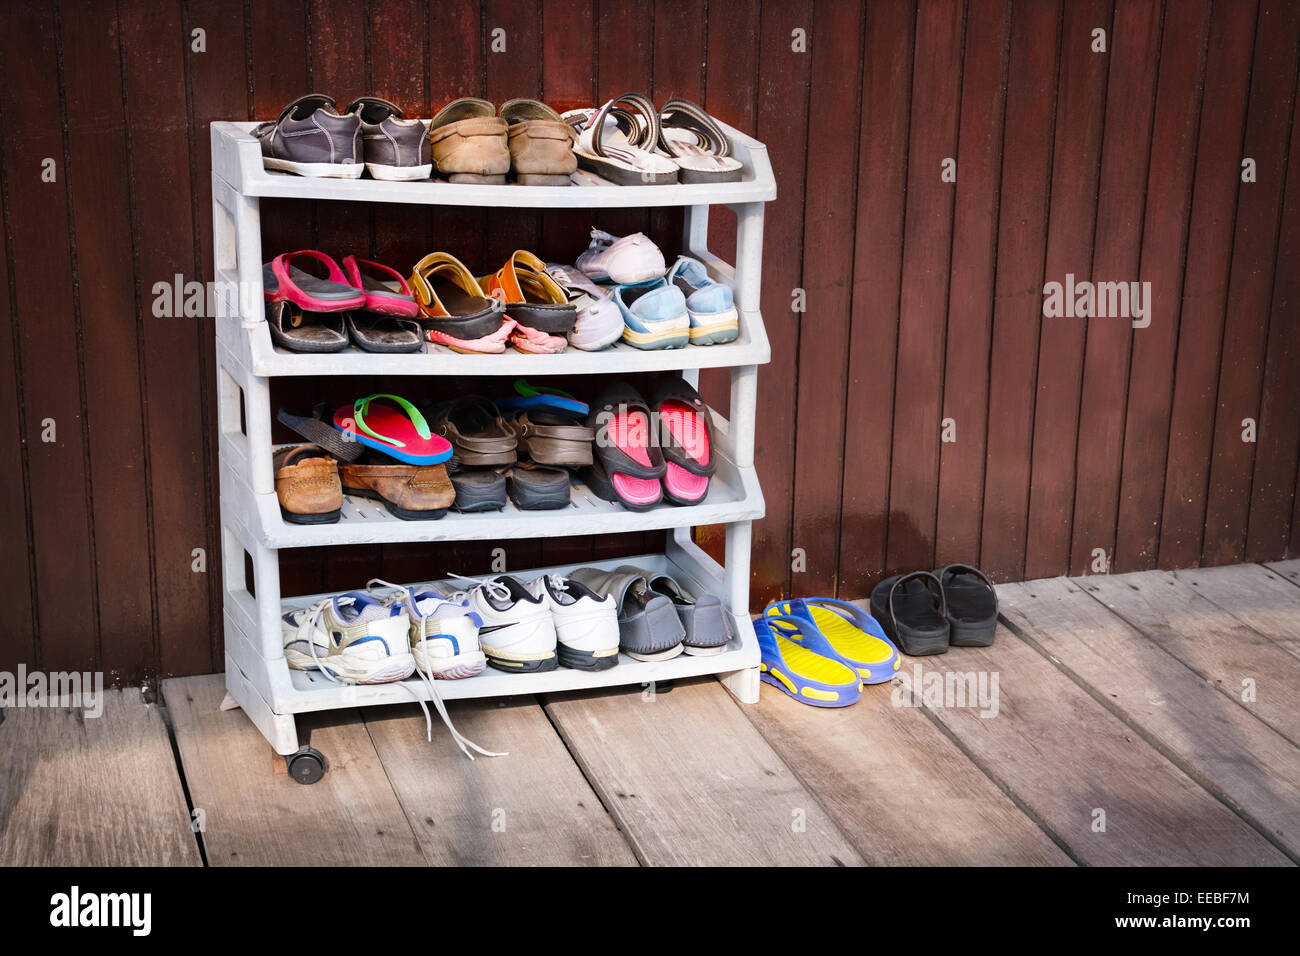 A variety of colorful shoes, neatly ordered on a plastic shoe rack outside a wooden house. - Stock Image